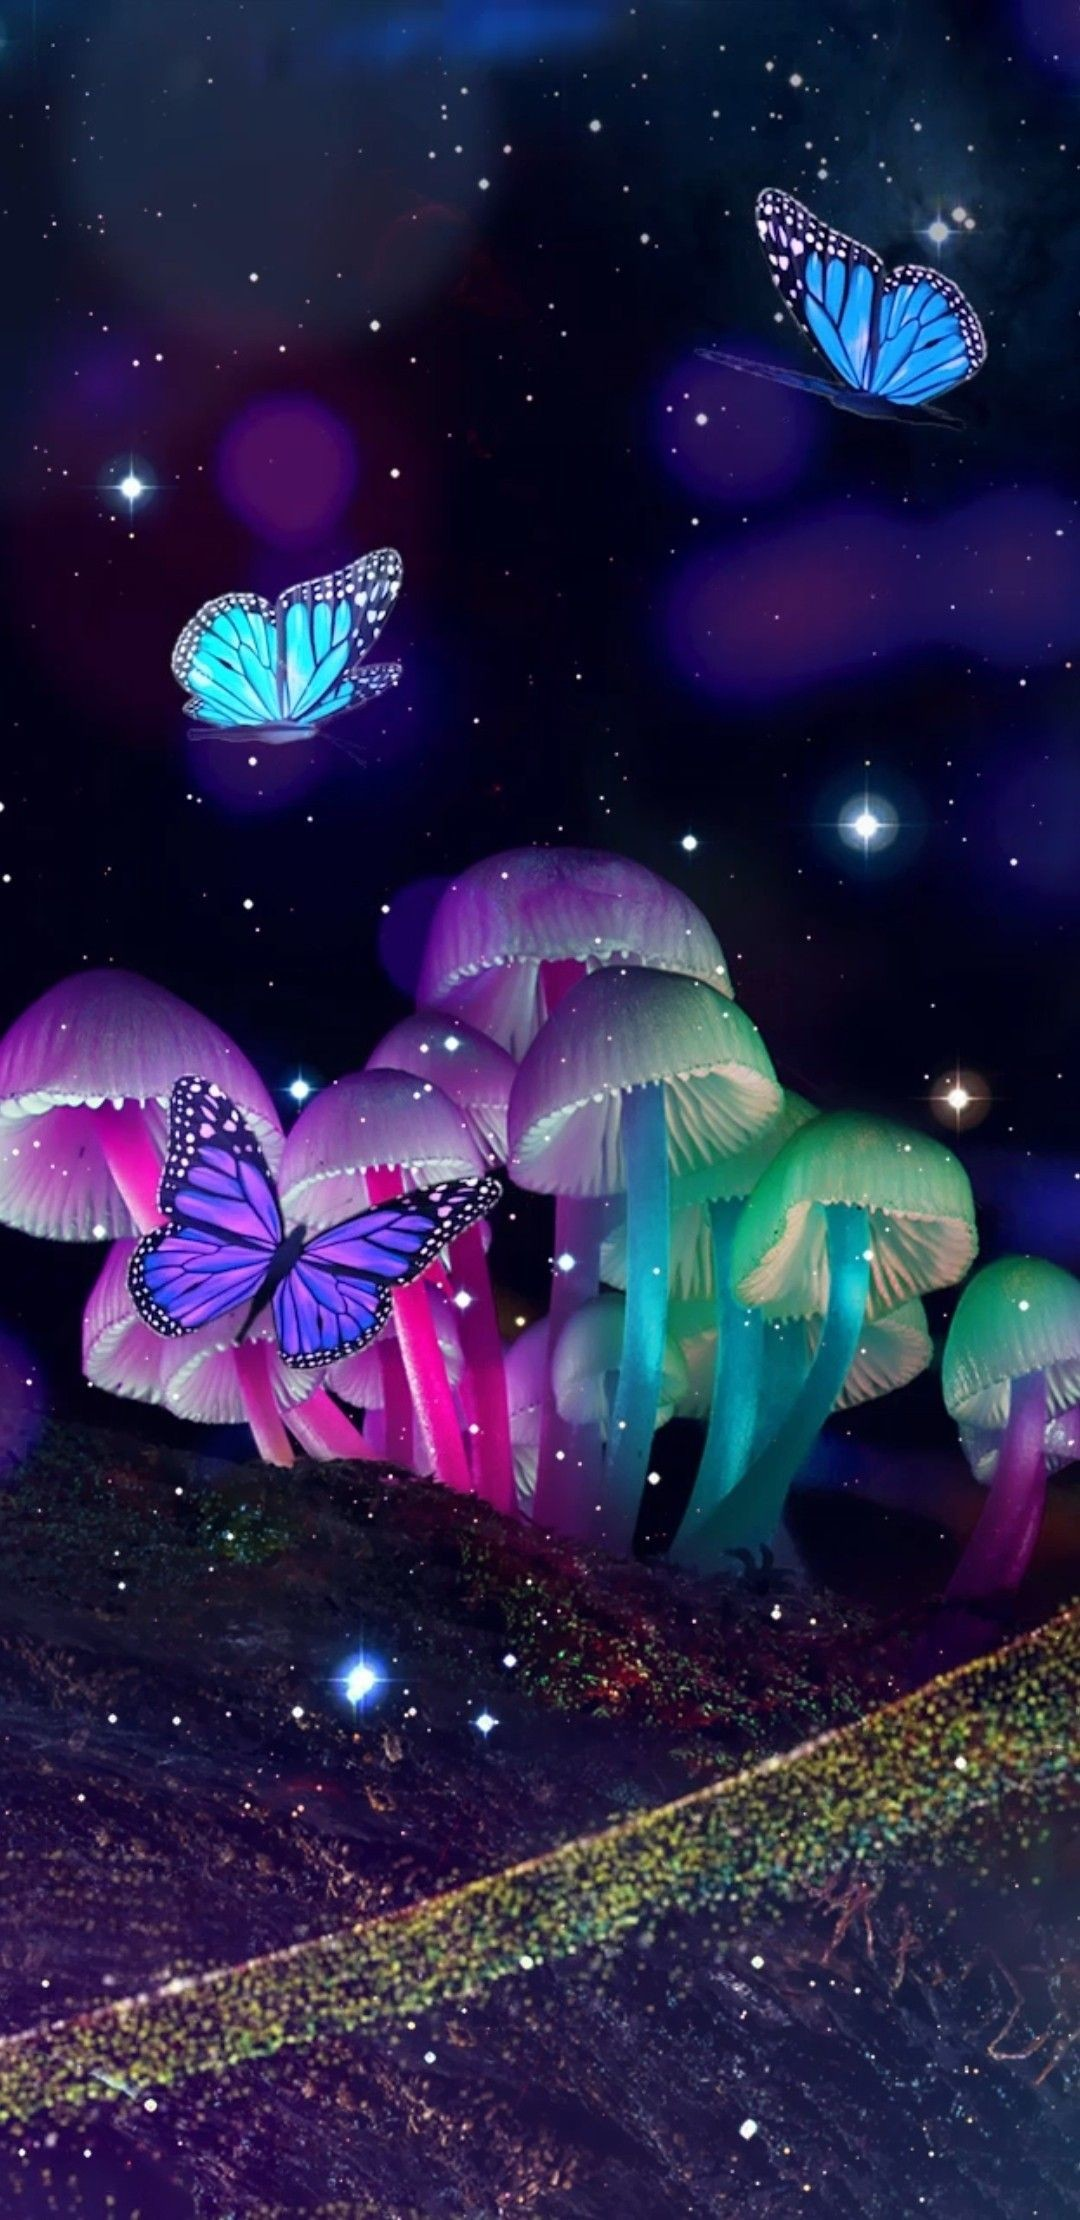 Res: 1080x2220, Beauty Iphone Wallpaper, Fairy Wallpaper, Butterfly Wallpaper, Abstract  Backgrounds, Wallpaper Backgrounds,